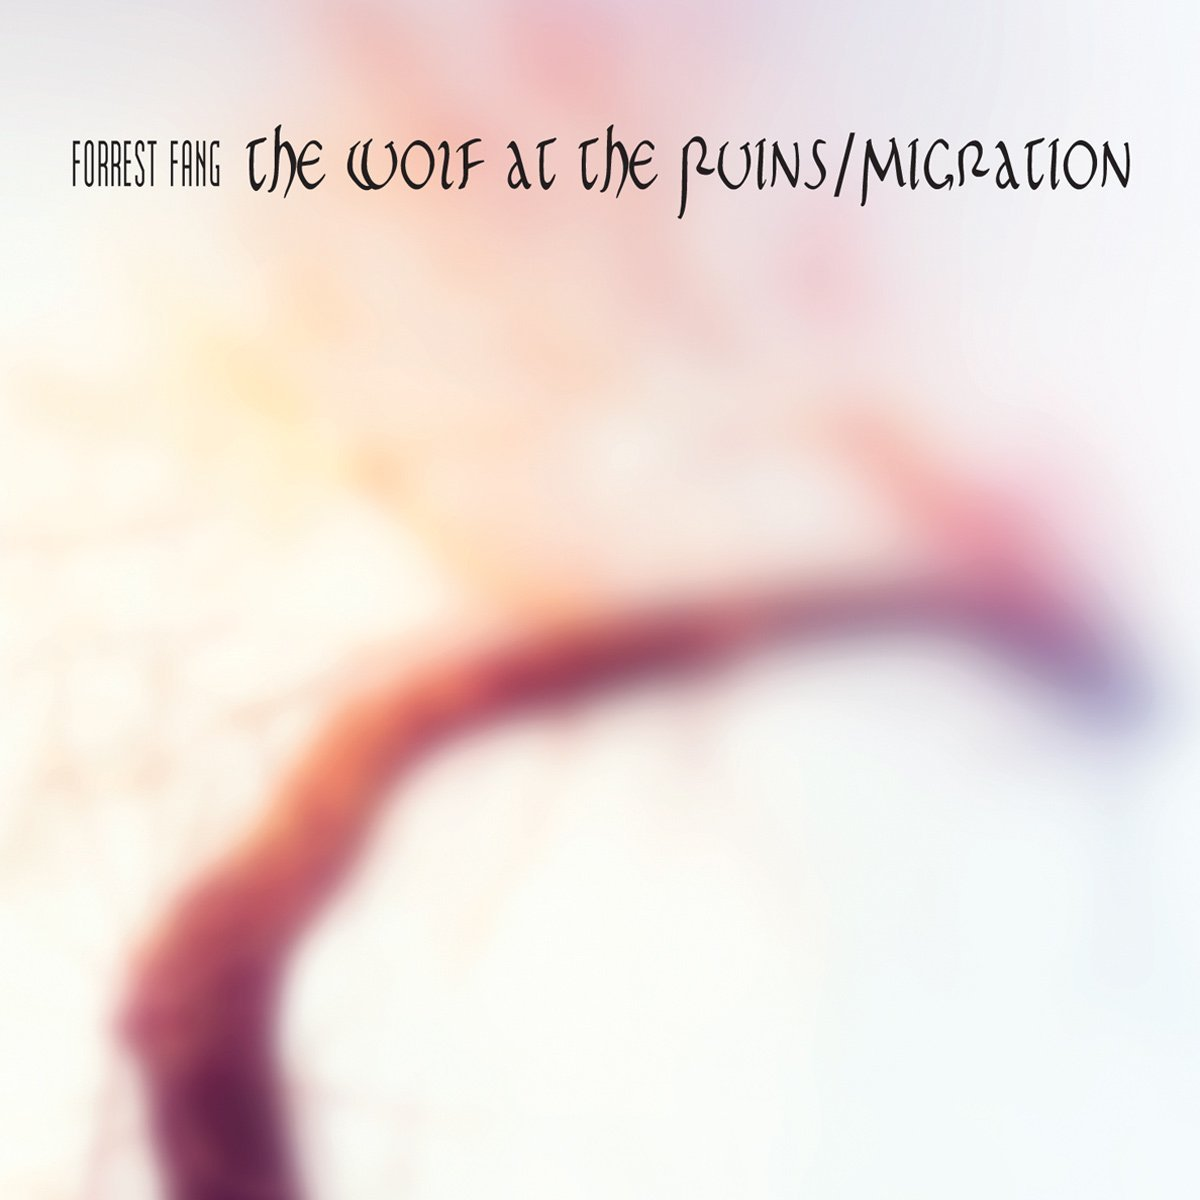 The Wolf at the Ruins / Migration Cover art